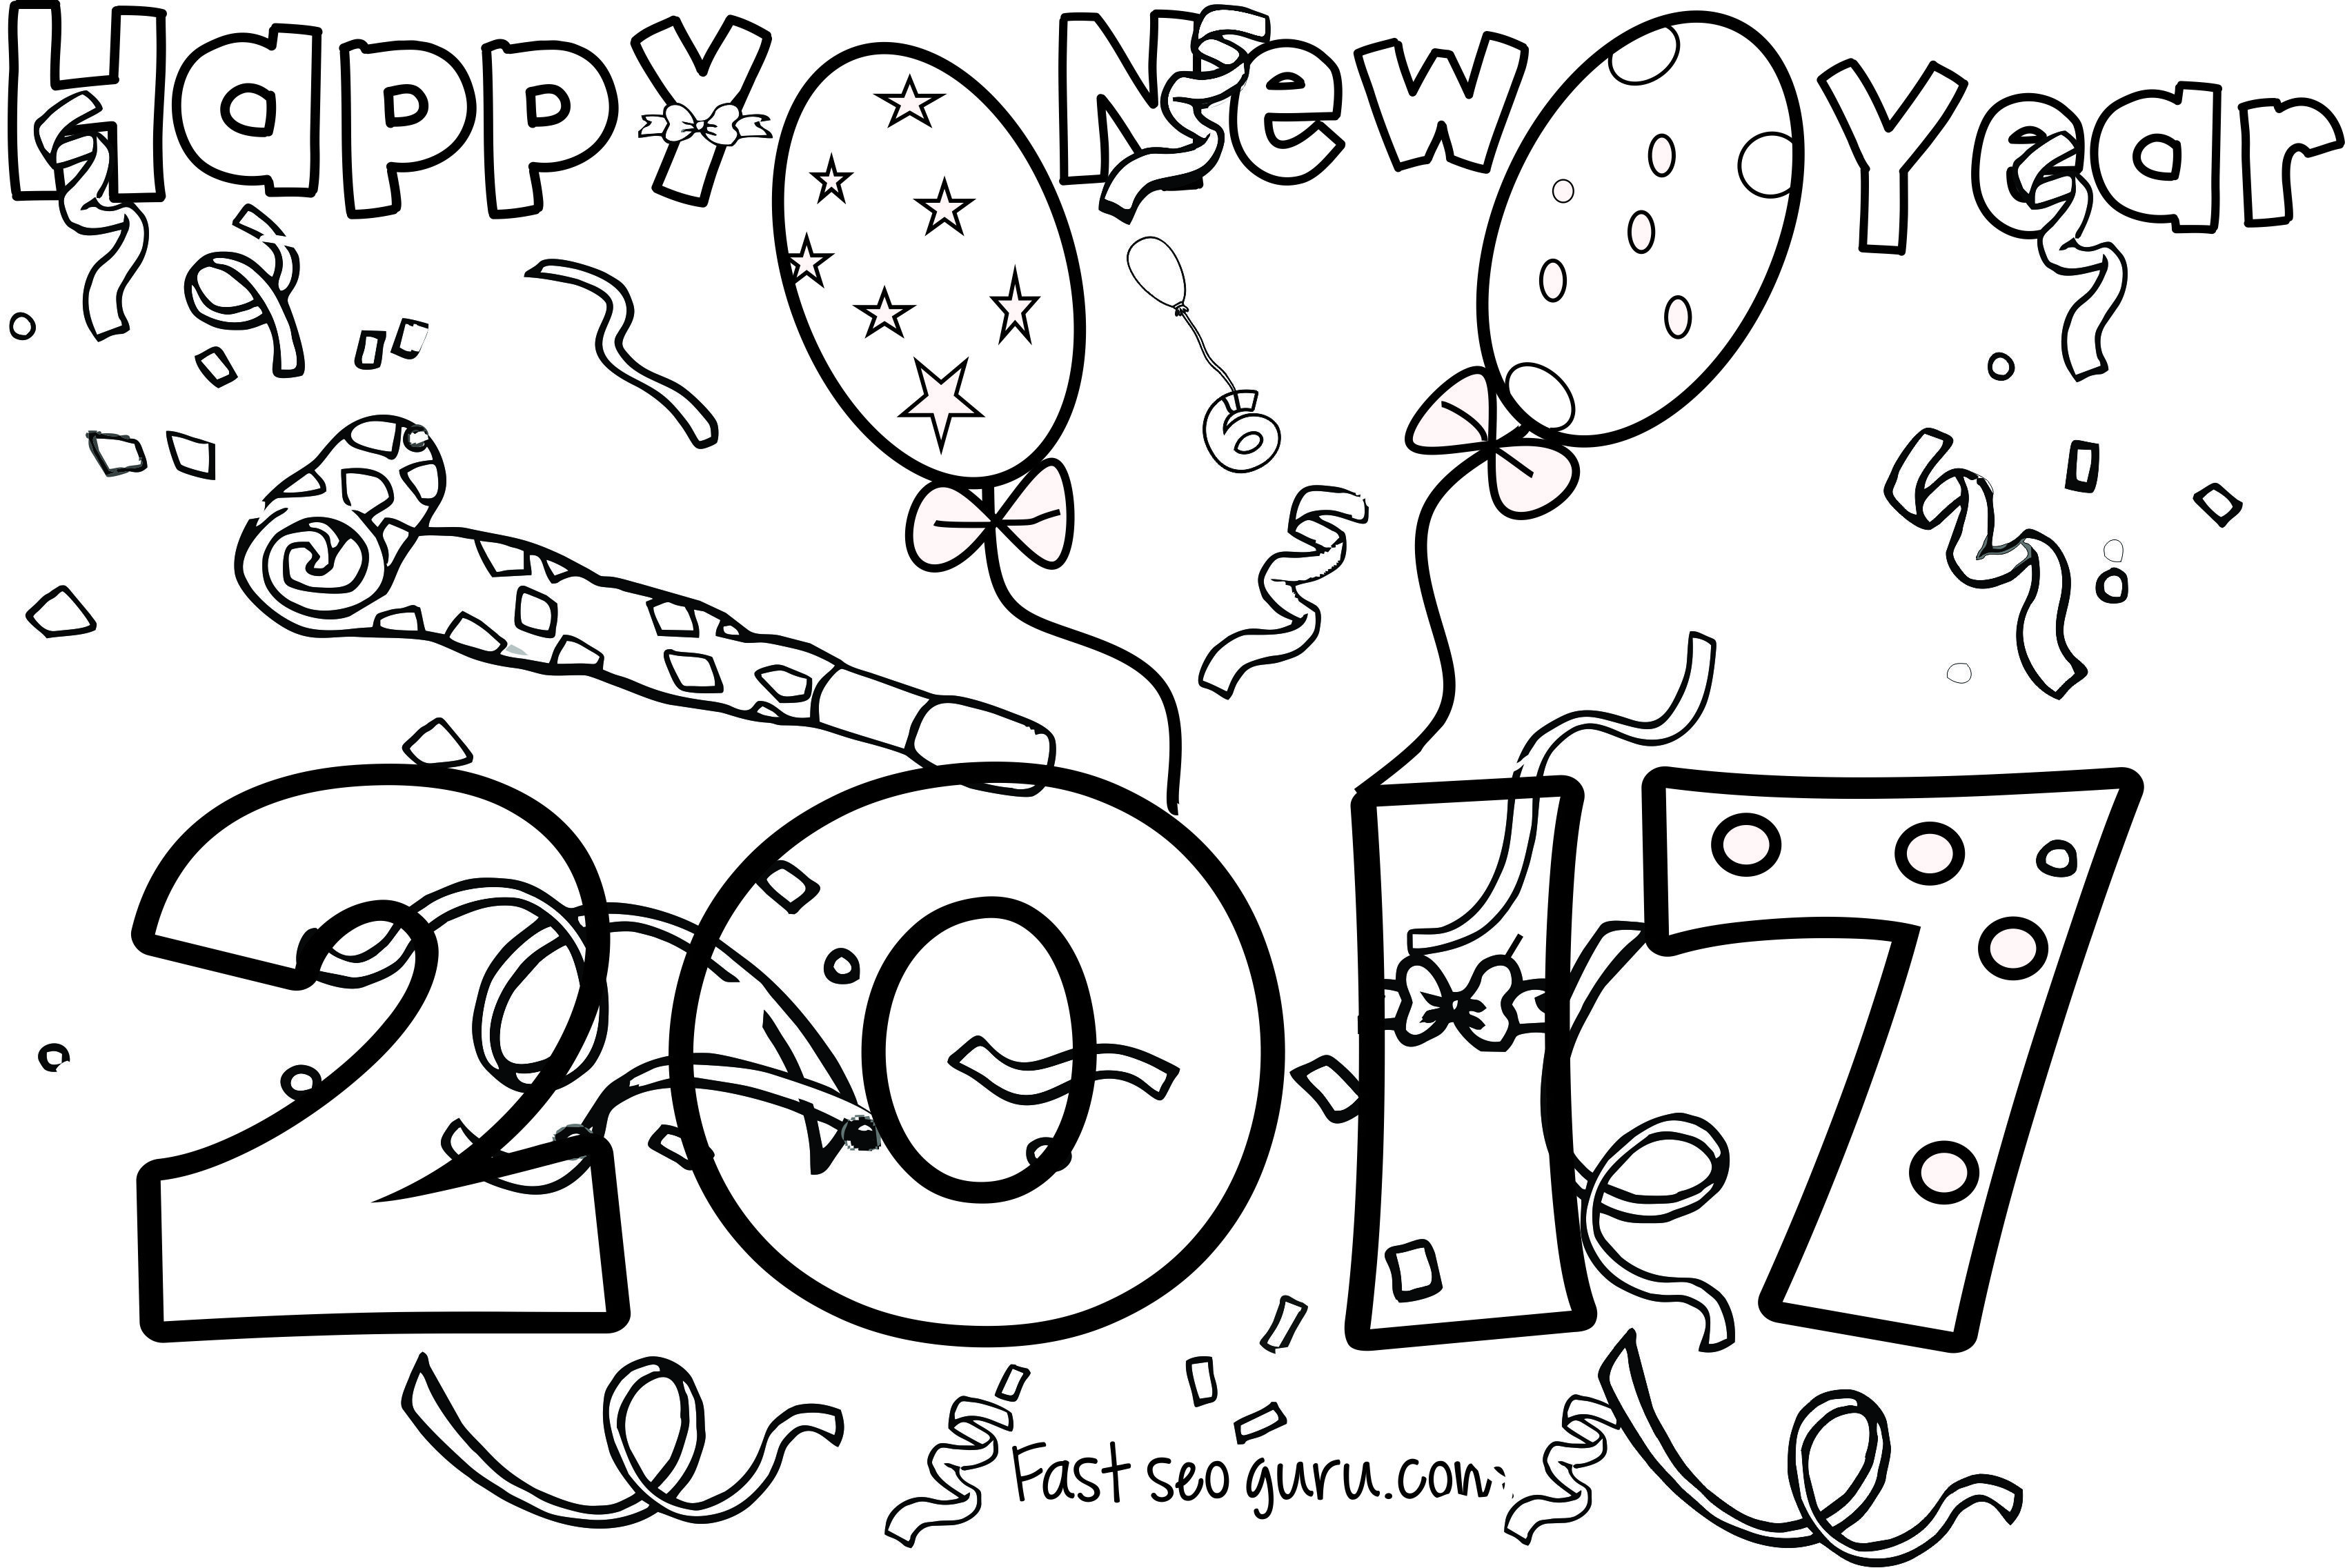 New Years 2017 coloring page for kids | School | Pinterest | Winter ...